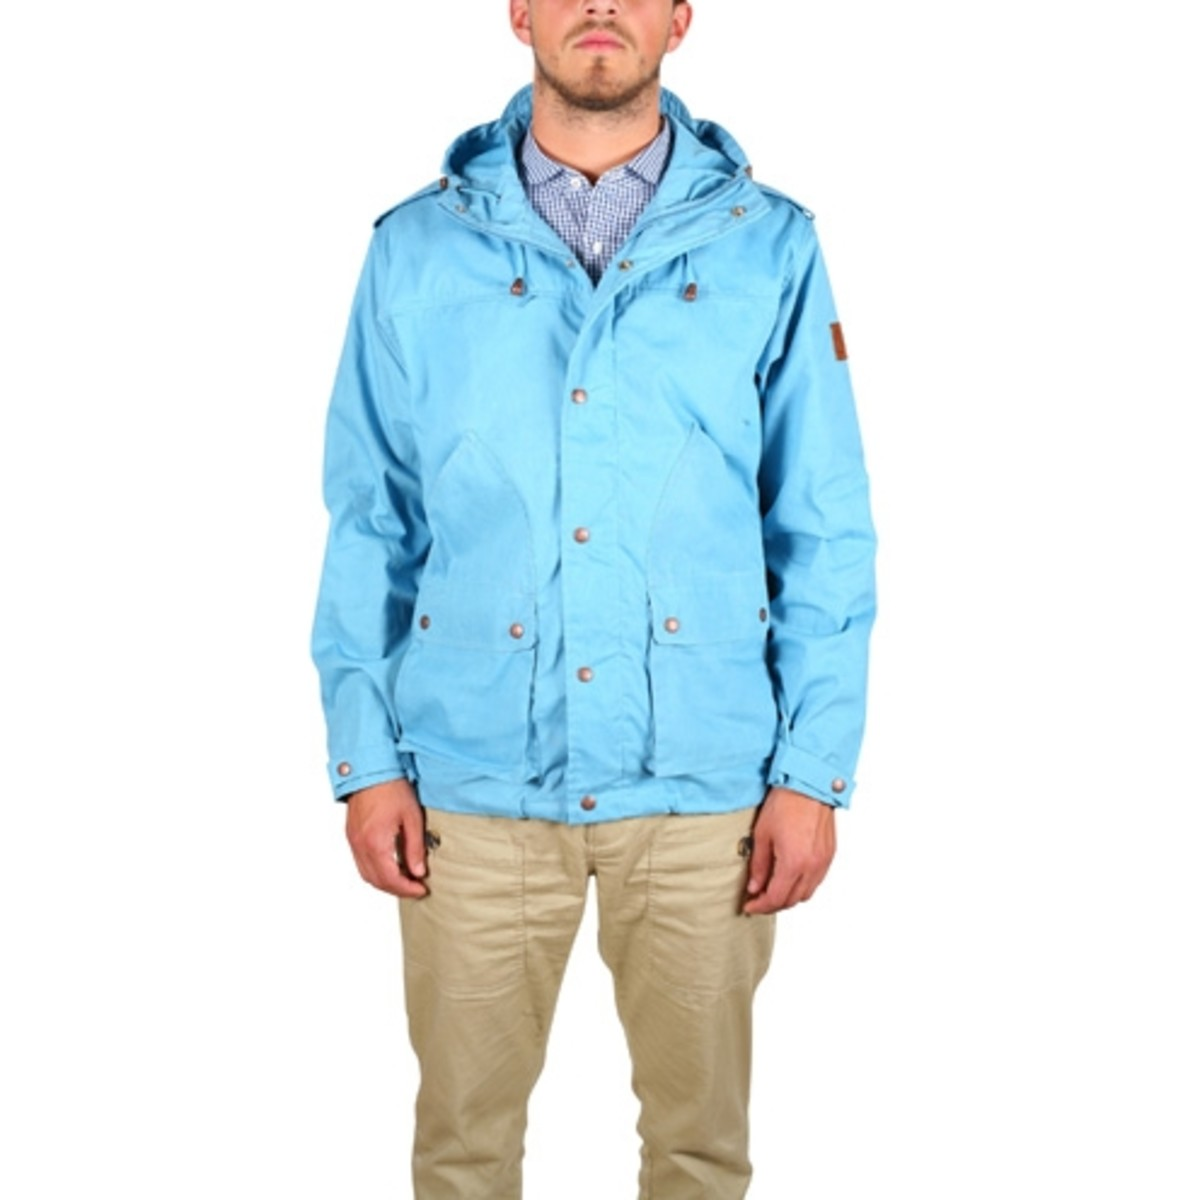 Penfield SS2011 Jackets 31